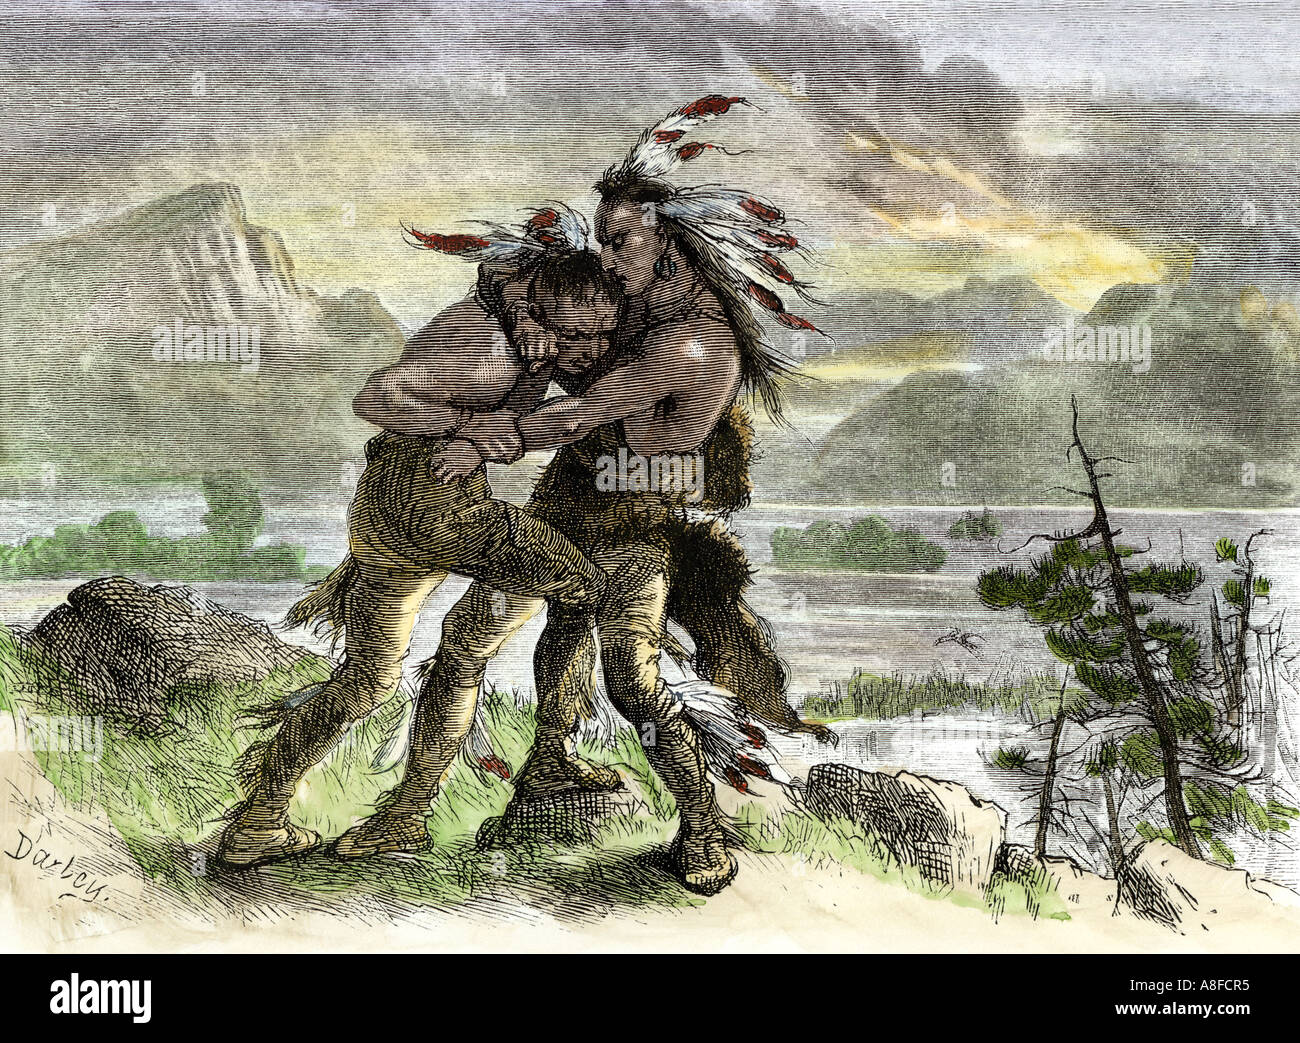 Hiawatha locked in combat with another Native American warrior. Hand-colored woodcut - Stock Image